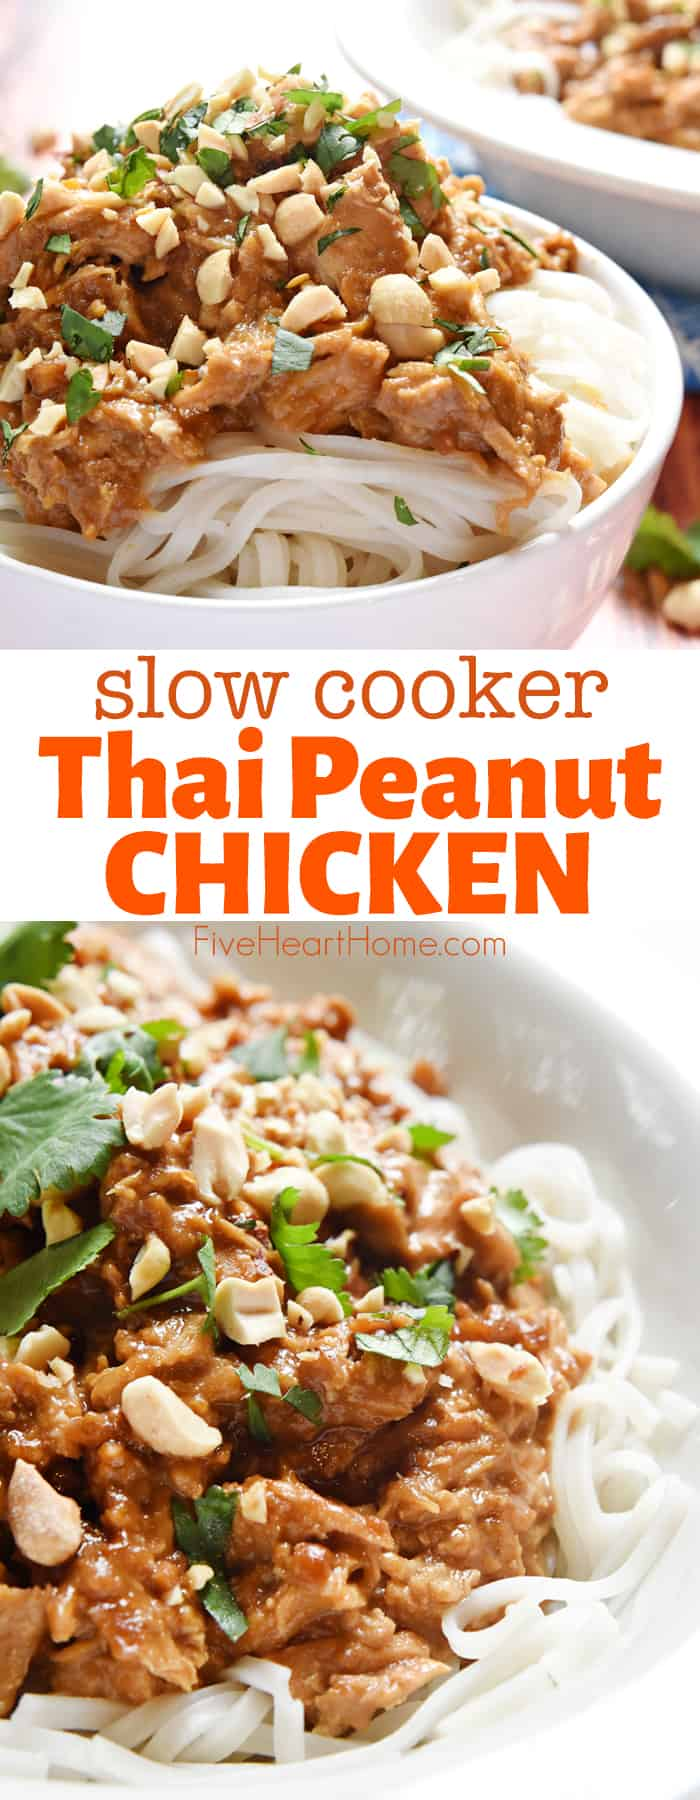 Slow Cooker Thai Peanut Chicken collage with text overlay